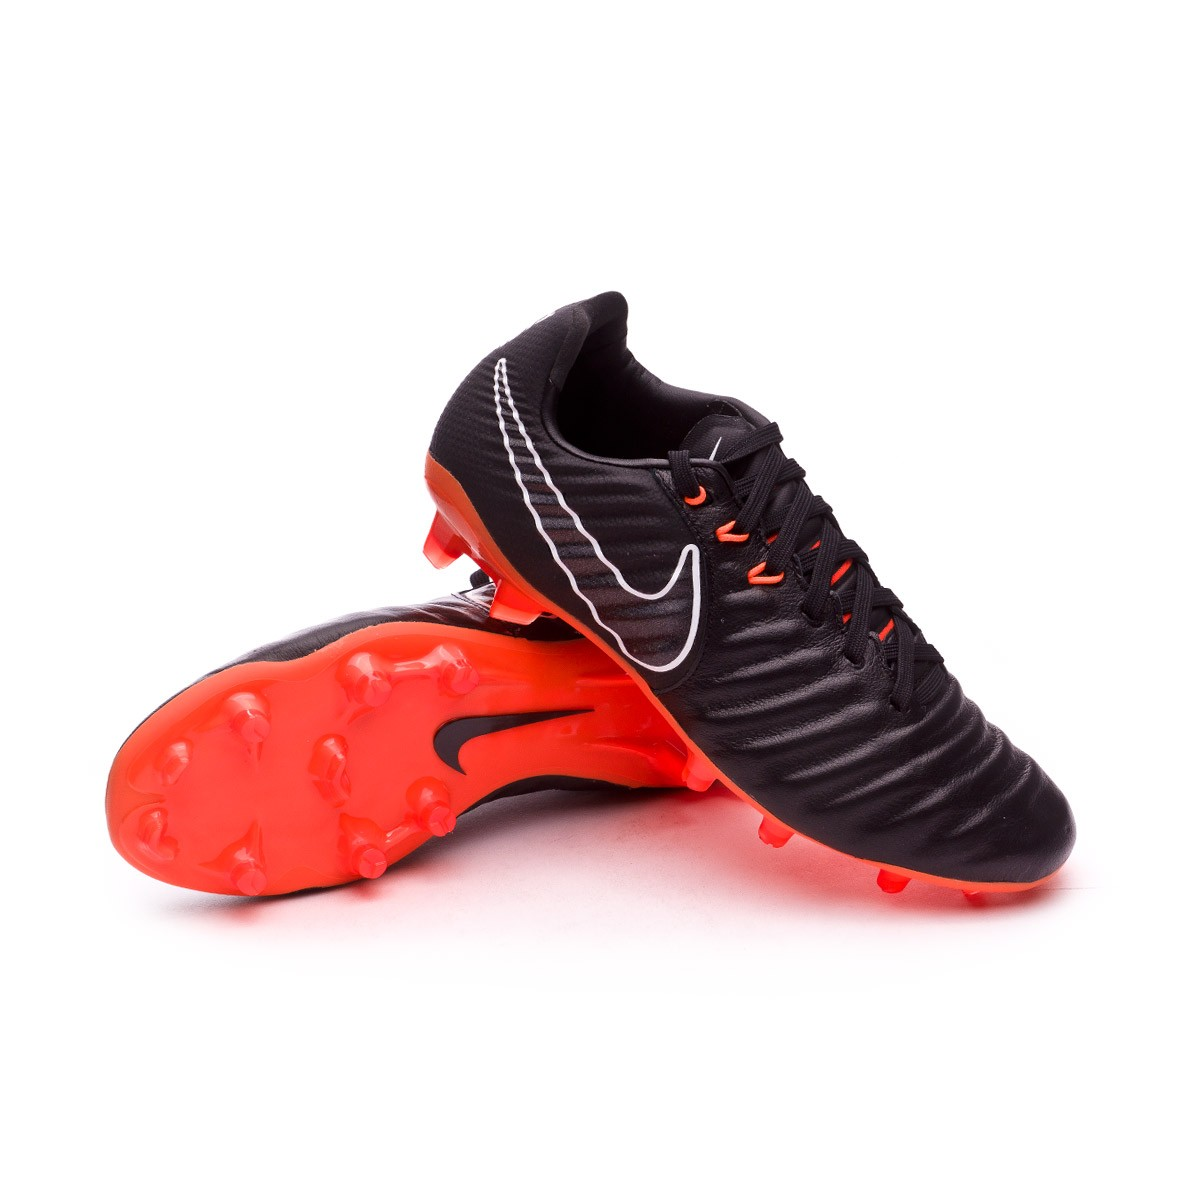 Boot Nike Kids Tiempo Legend VII Elite FG Black-Total orange-Black ... a8c3d2cf1883